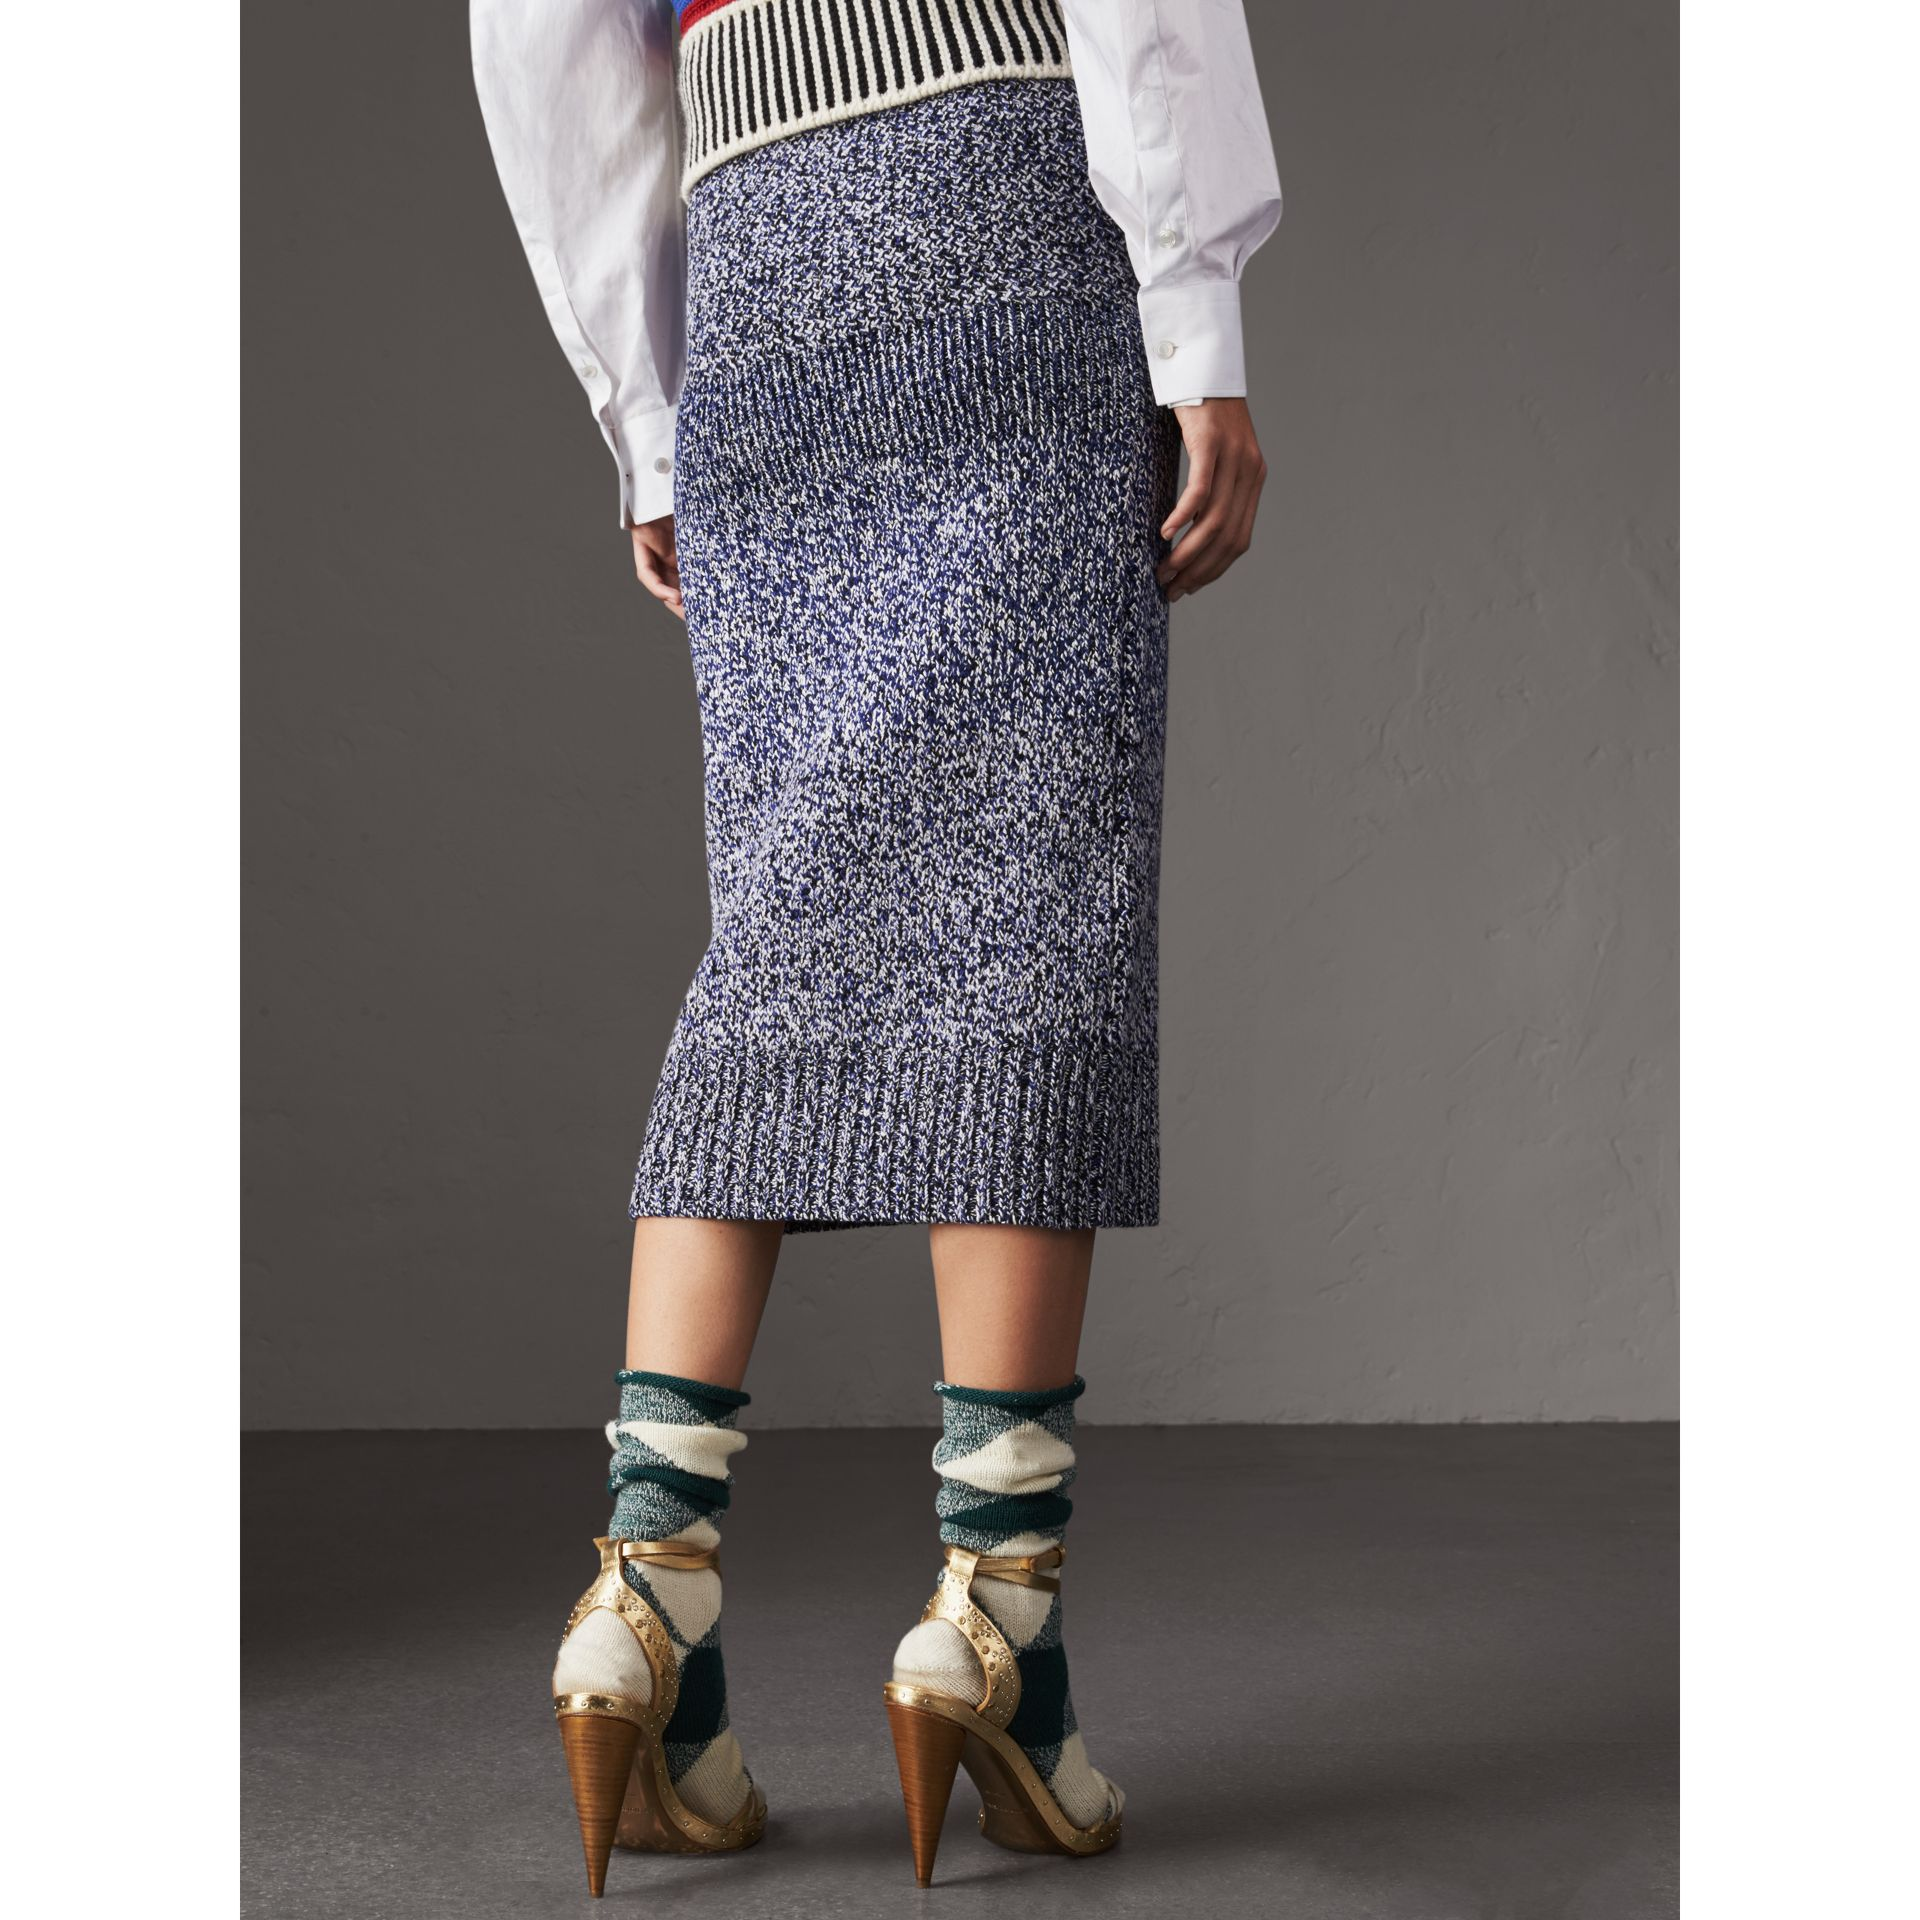 Cashmere Cotton Wool Blend Mouliné Skirt in Bright Navy/black - Women | Burberry Hong Kong - gallery image 2